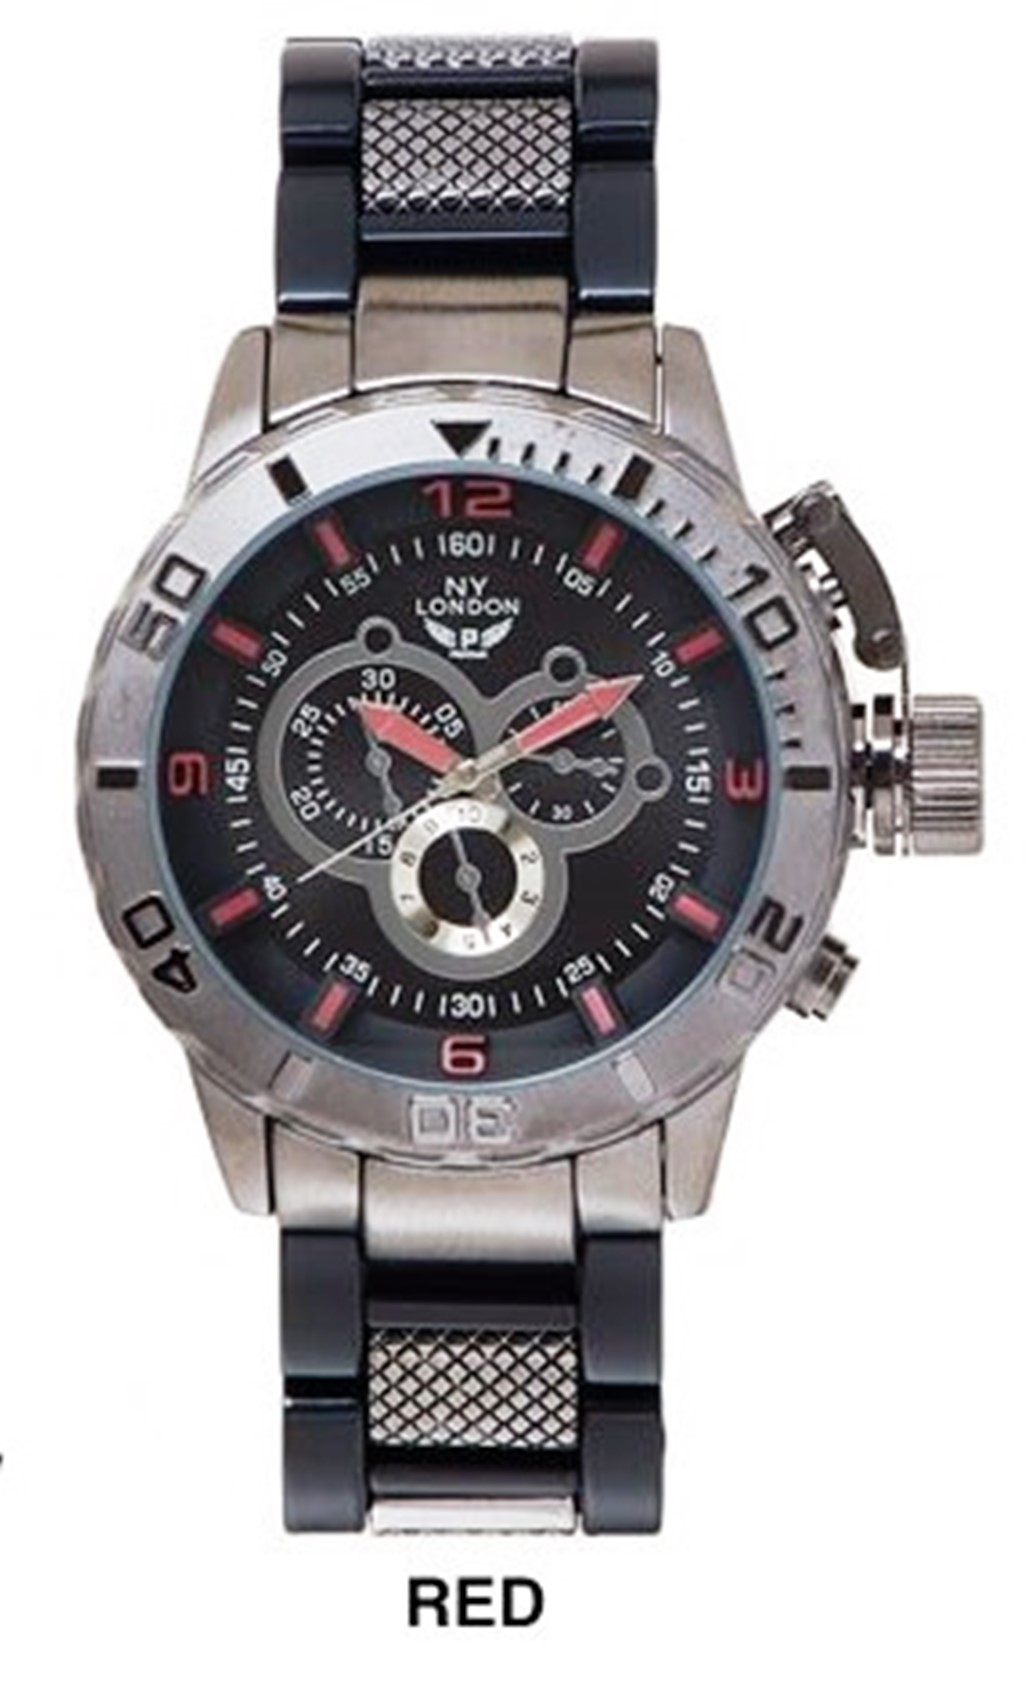 NEW Men's 3 Eye Chronograph Dial WIth fancy Stainless Steal Band